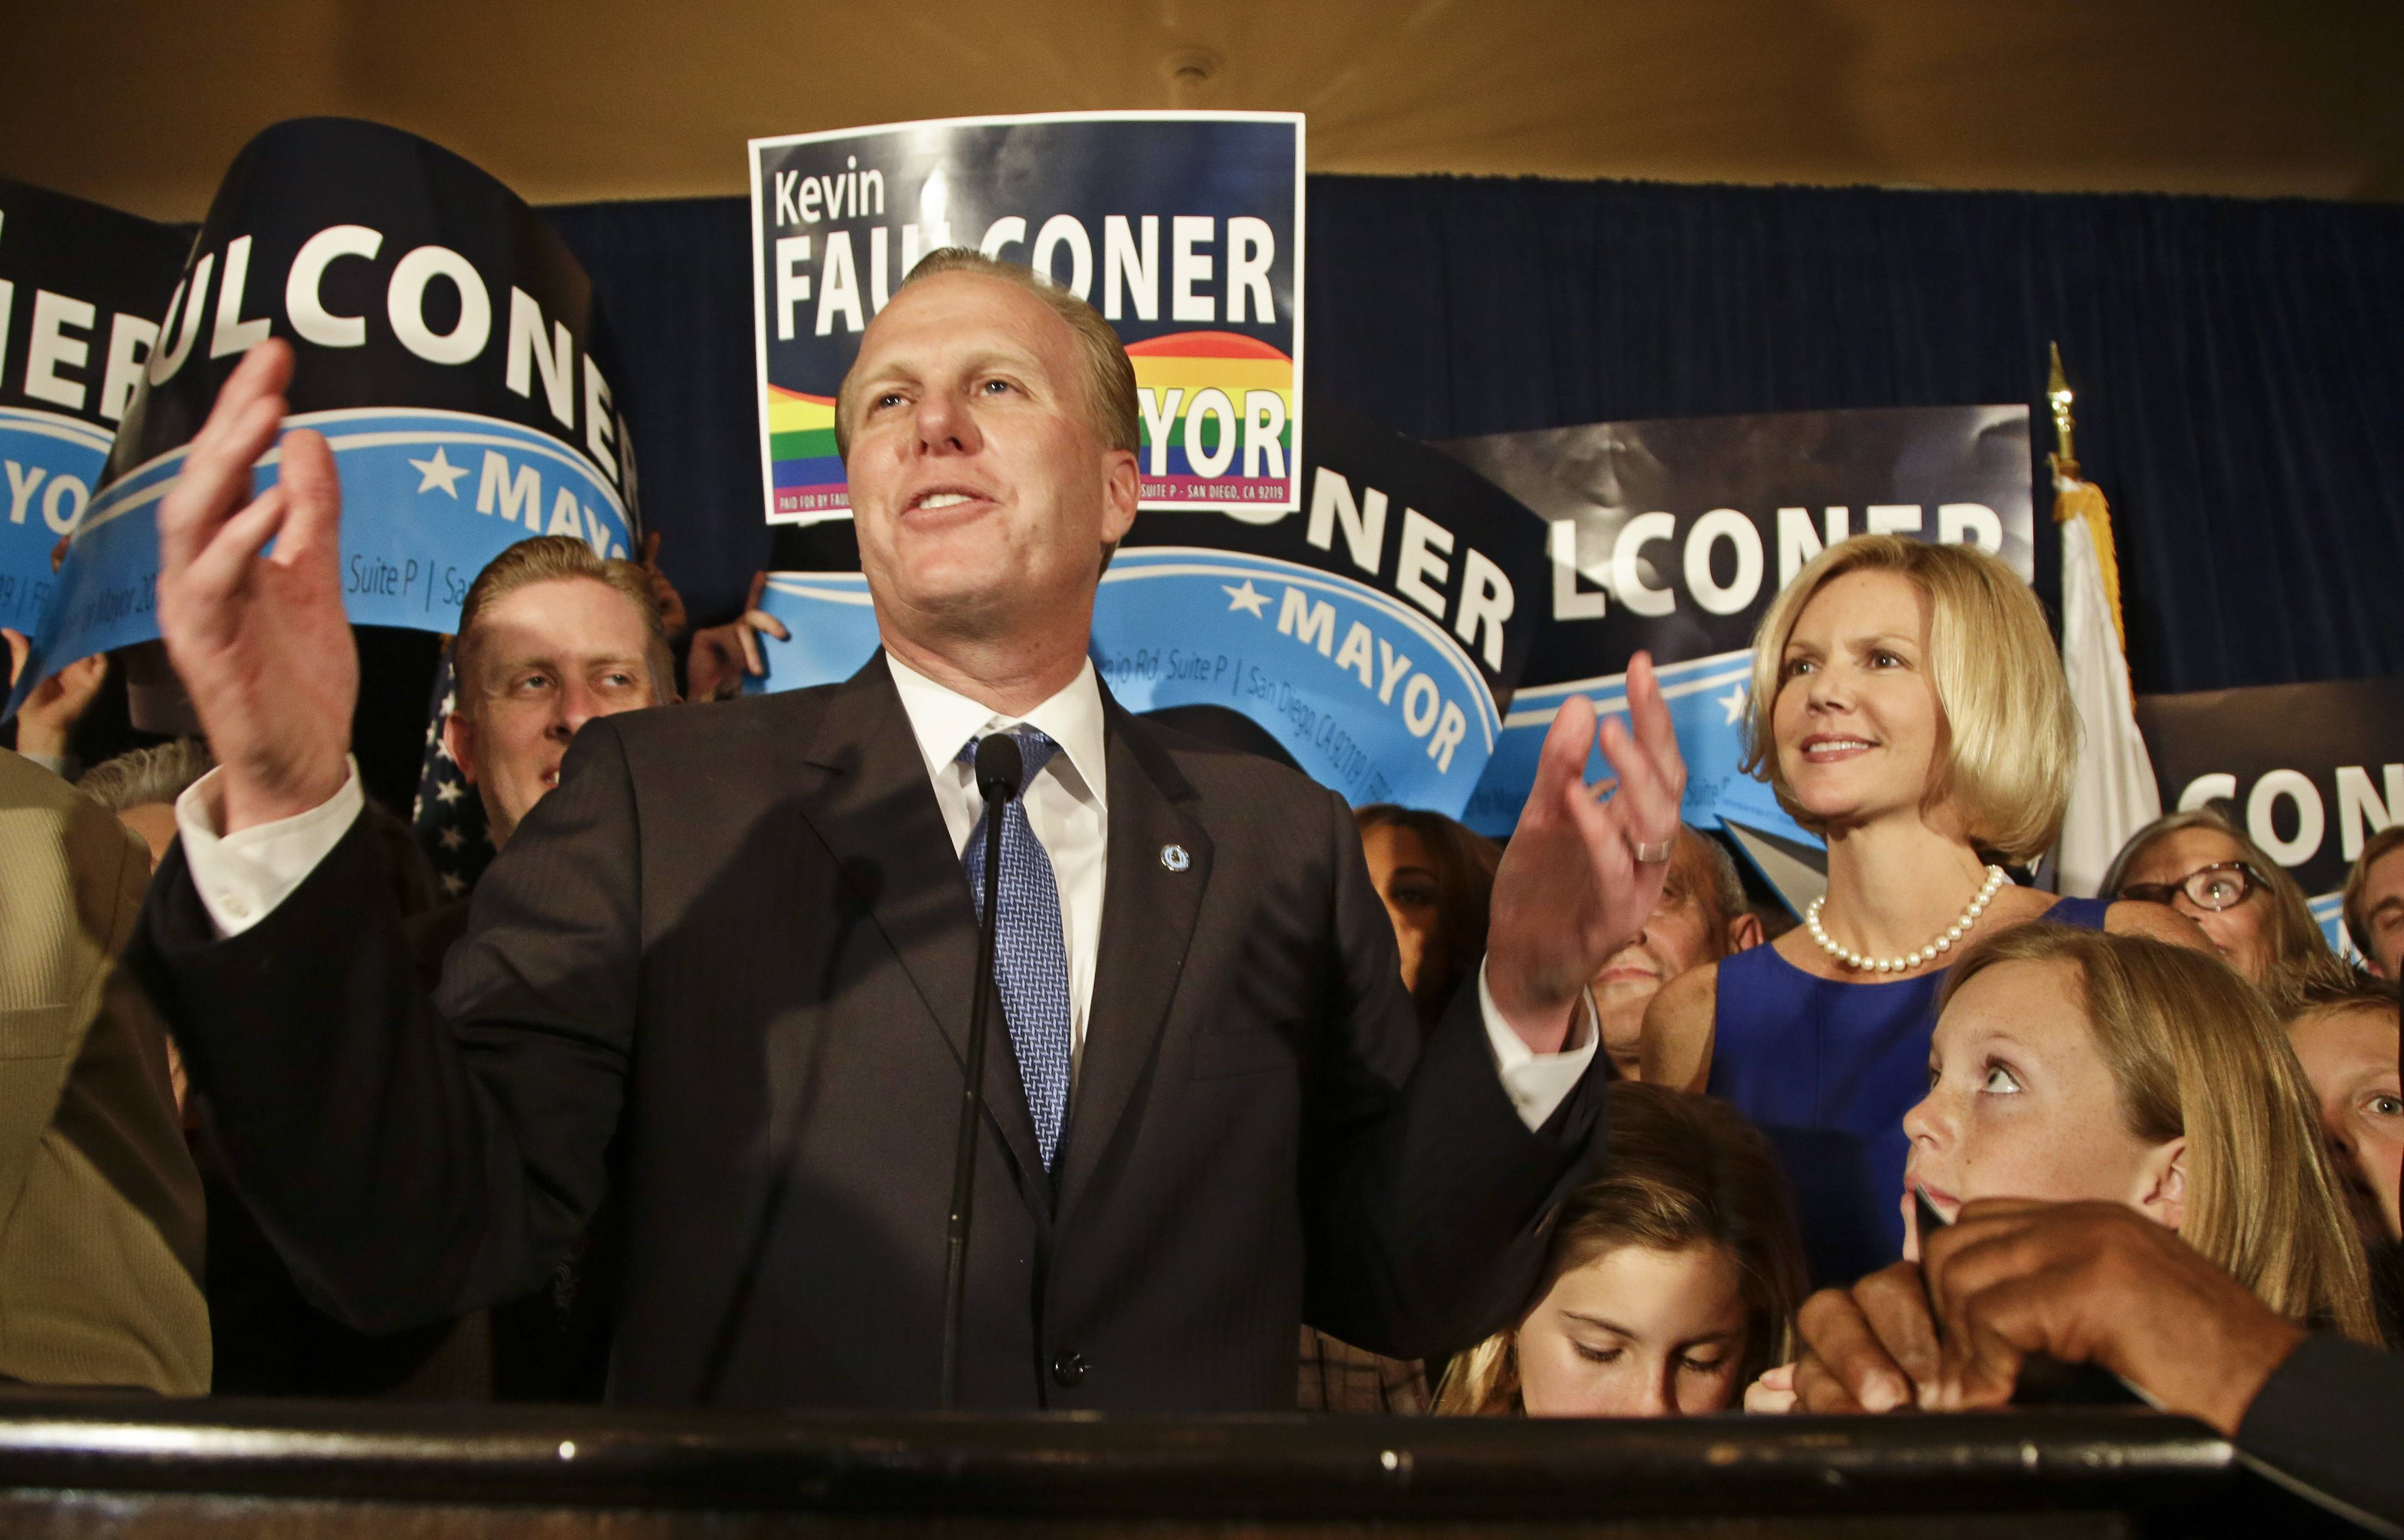 San Diego mayoral candidate Kevin Faulconer tells his supporters that while there are still votes to be counted they are looking good at a rally Tuesday, Feb. 11, 2014, in San Diego.